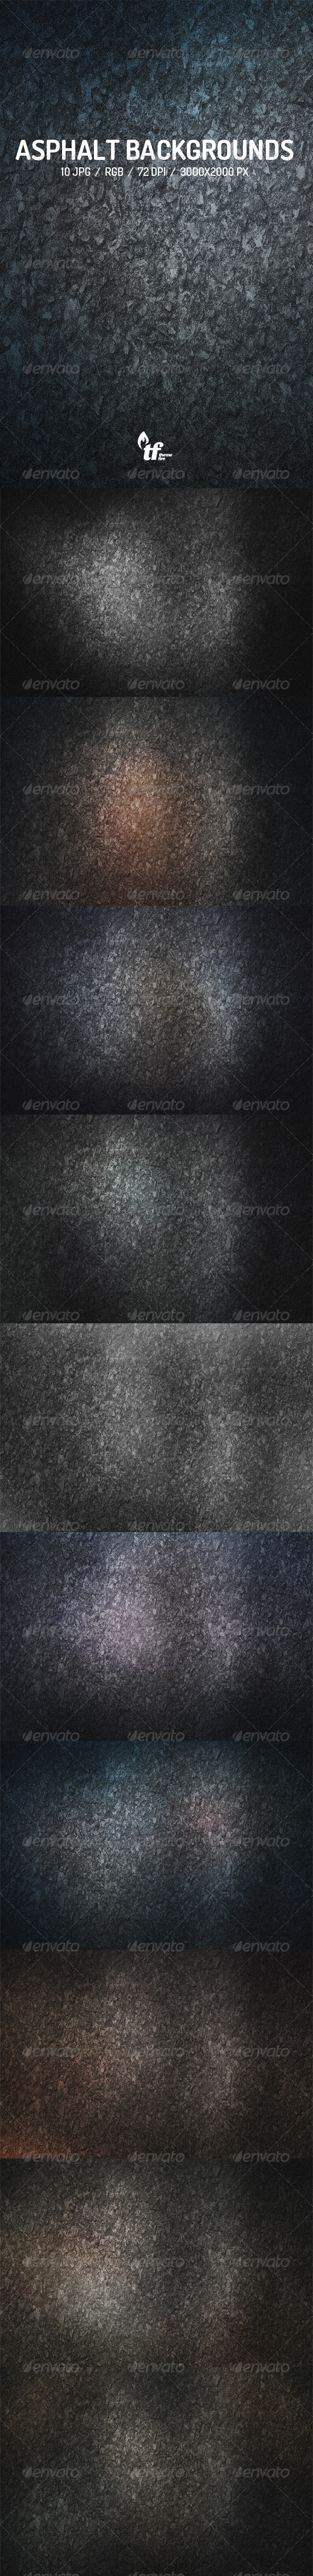 GraphicRiver Asphalt Backgrounds 7577990